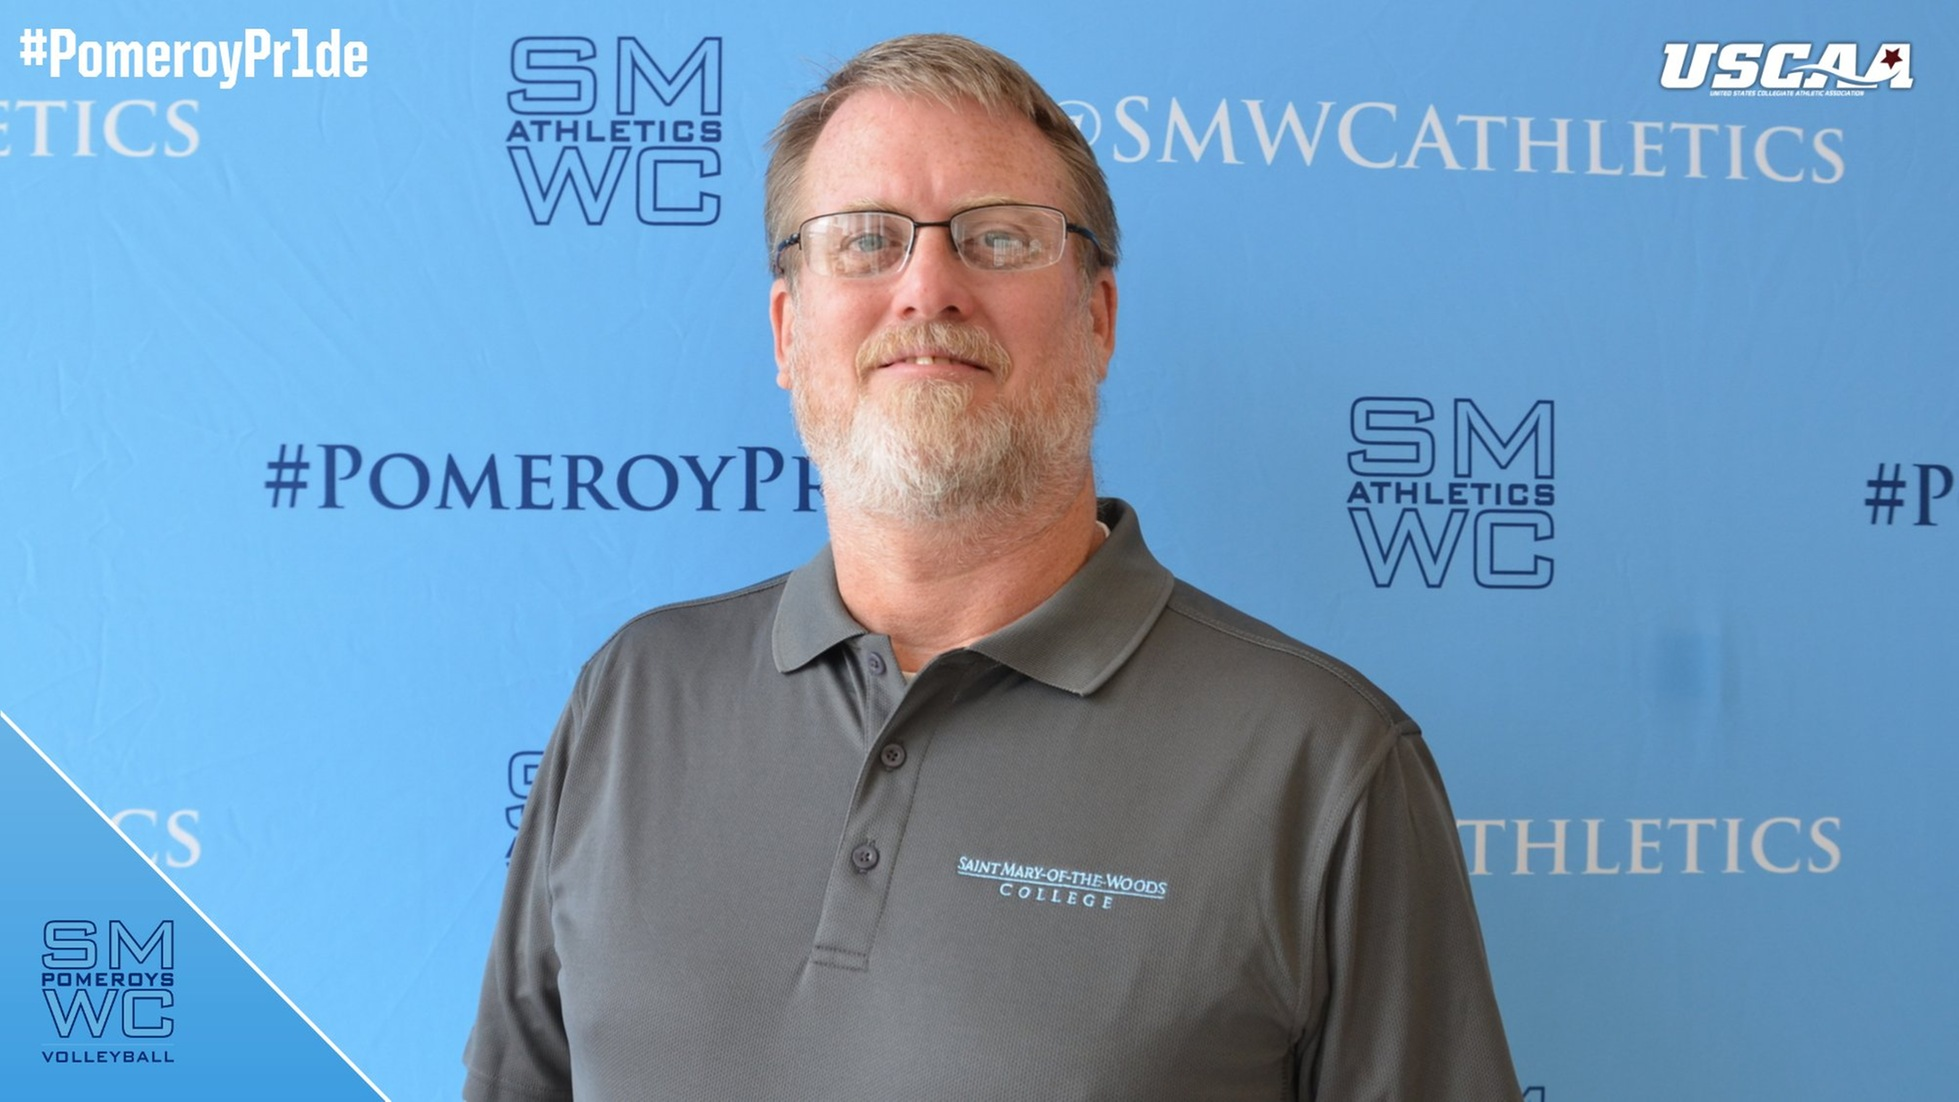 SMWC Hires Sean McMorrow as Head Women's Volleyball Coach